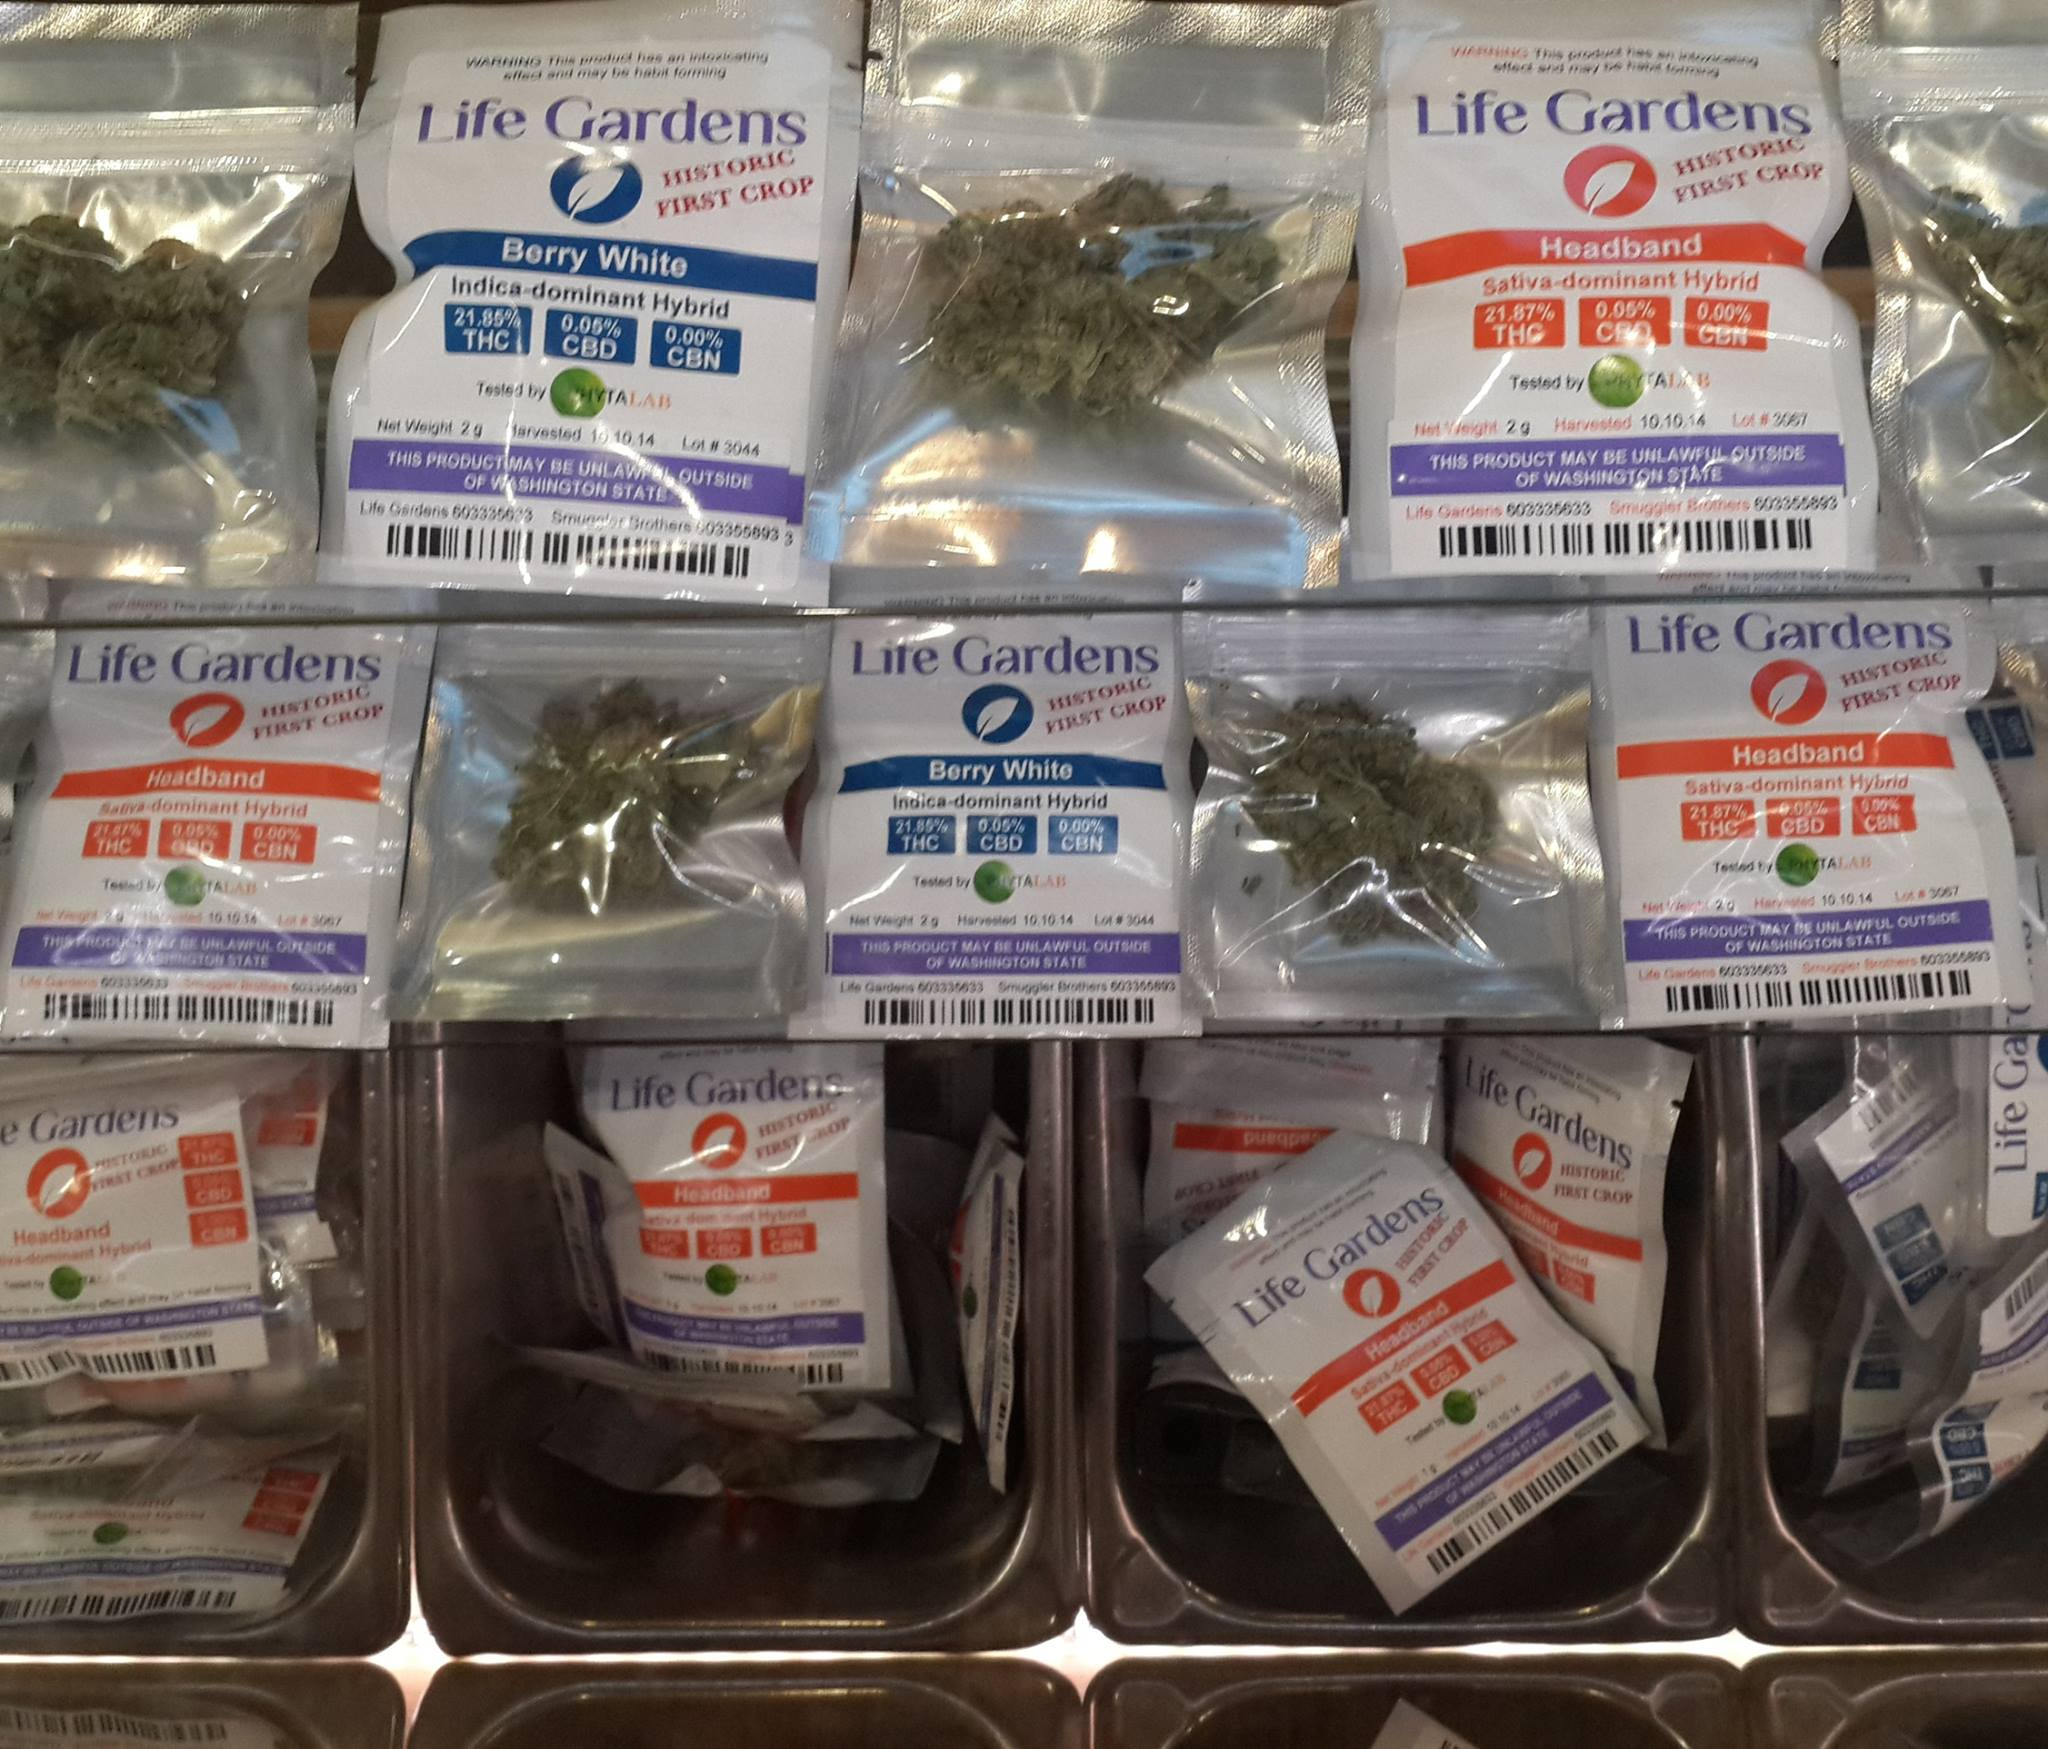 First batch of Life Gardens products for sale